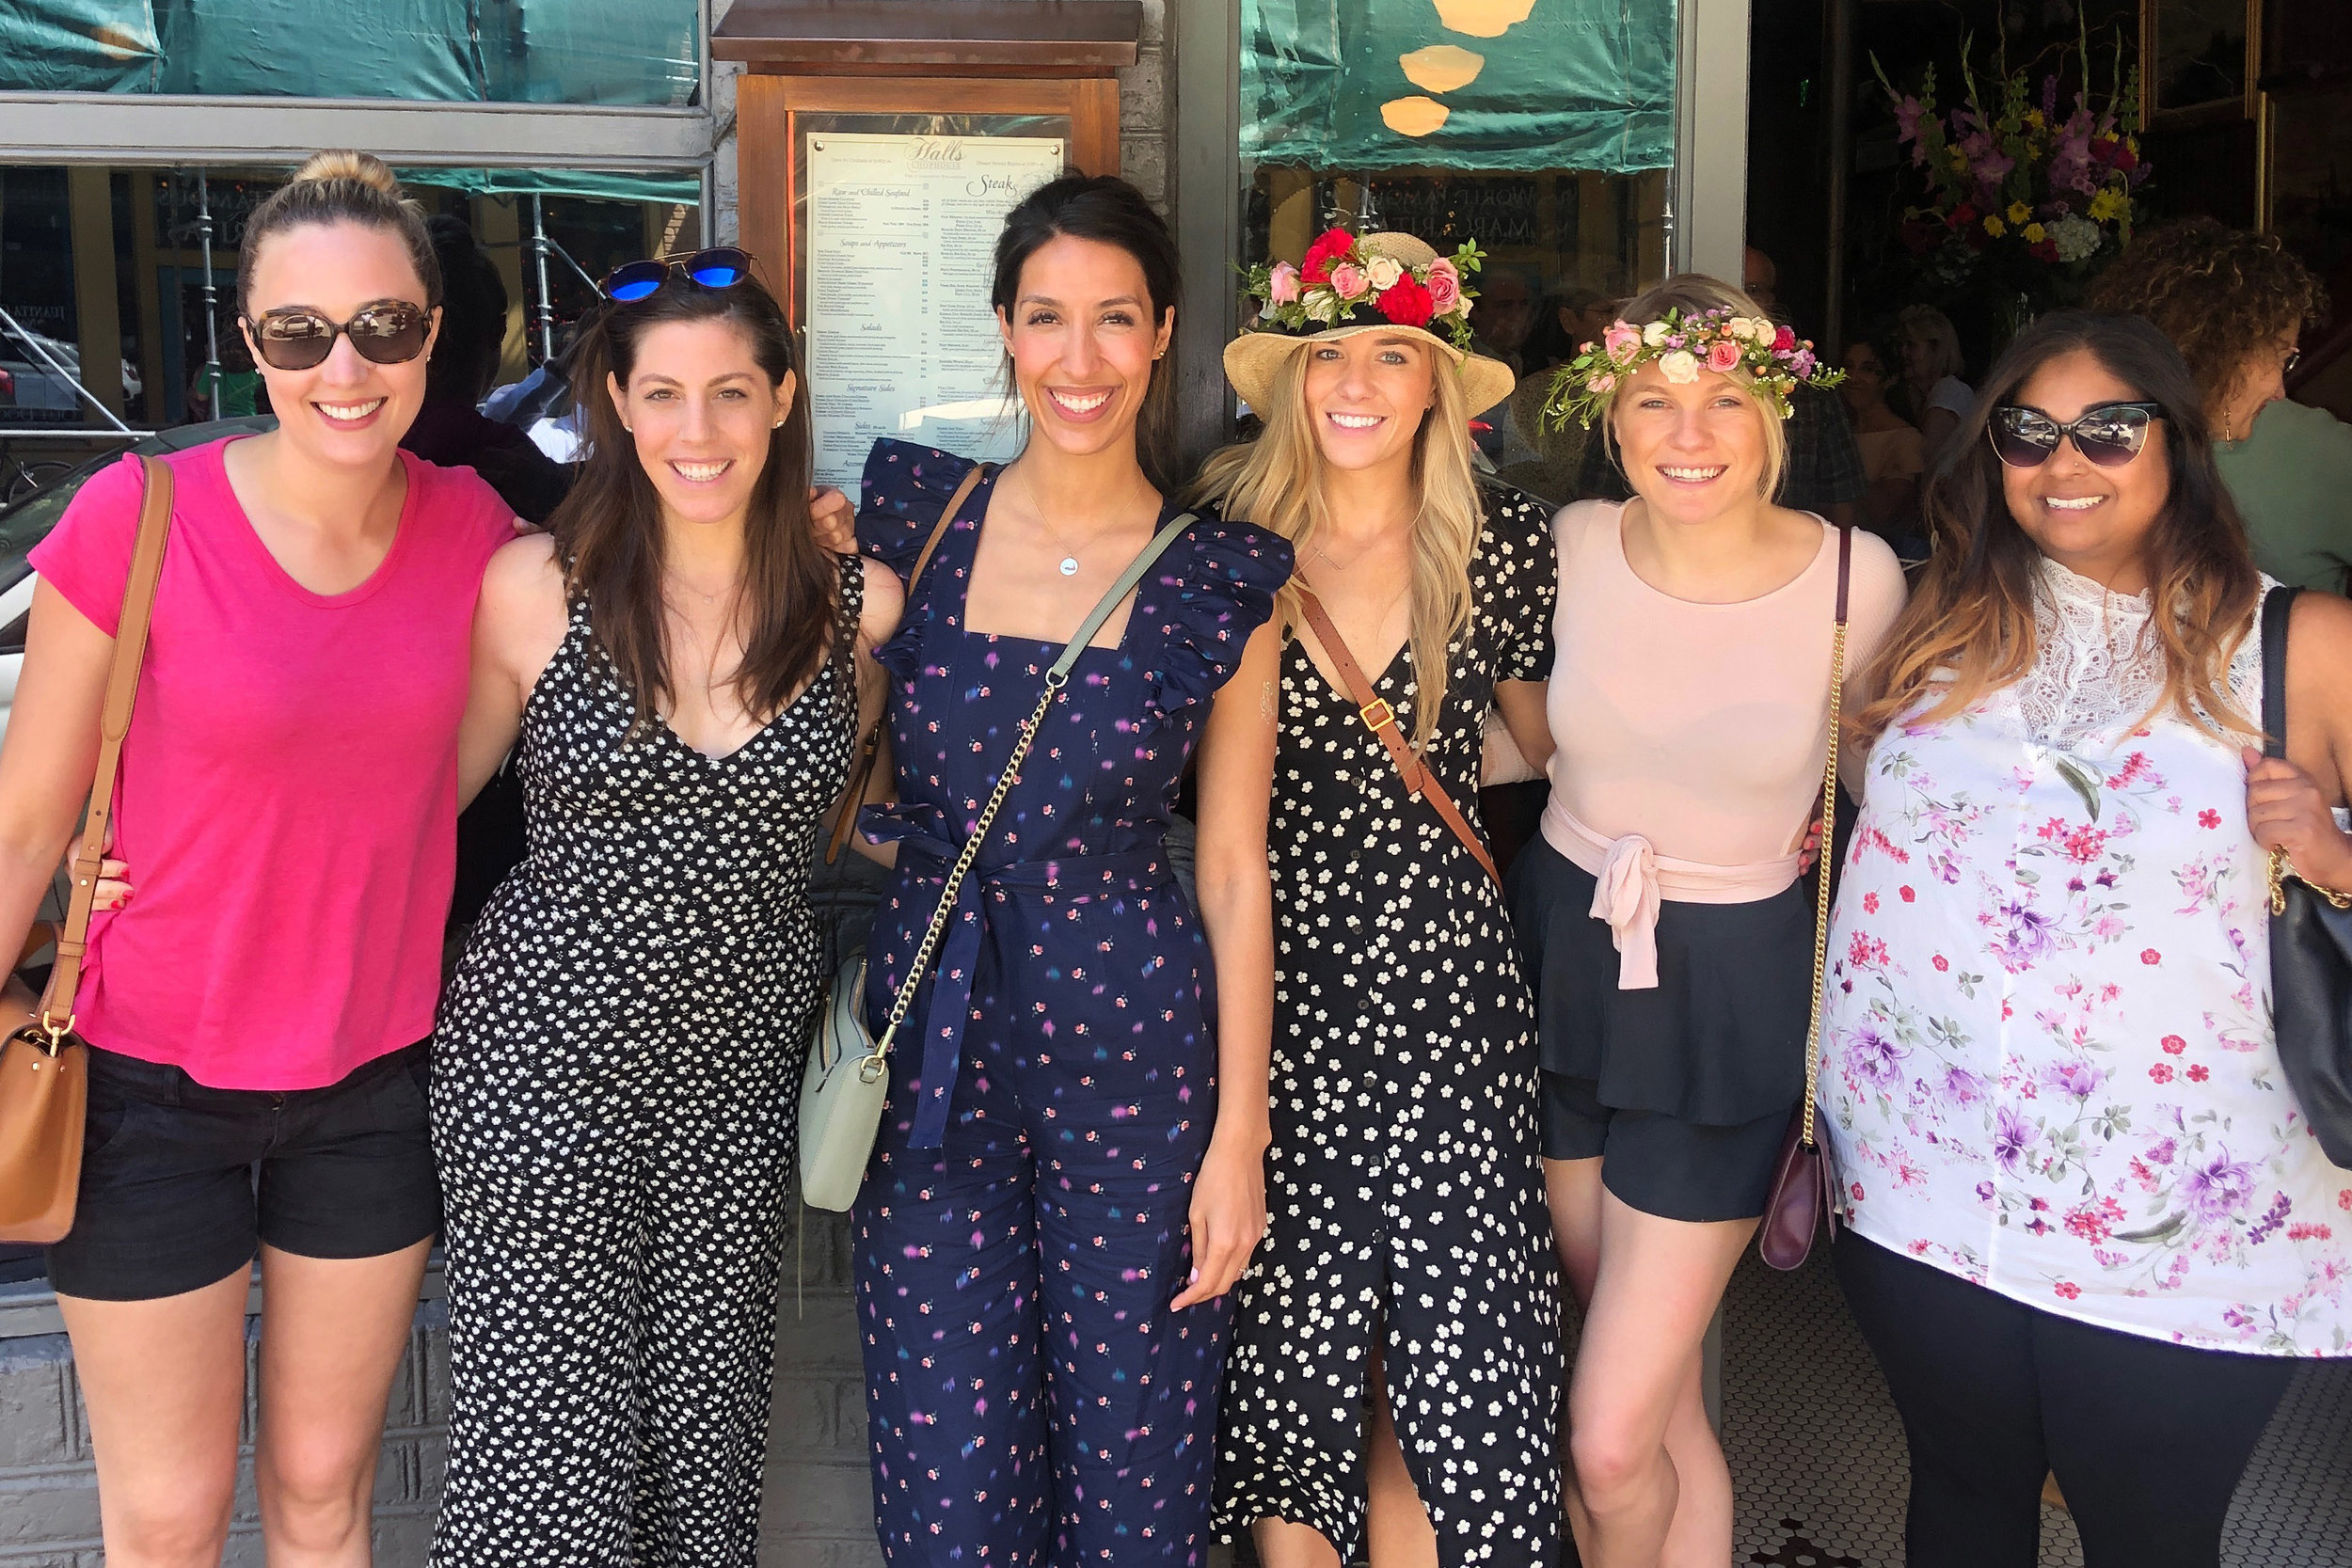 Interested in setting up a party for an upcoming bachelorette getaway this summer?    Schedule    now before it's too late!    xo, Molly